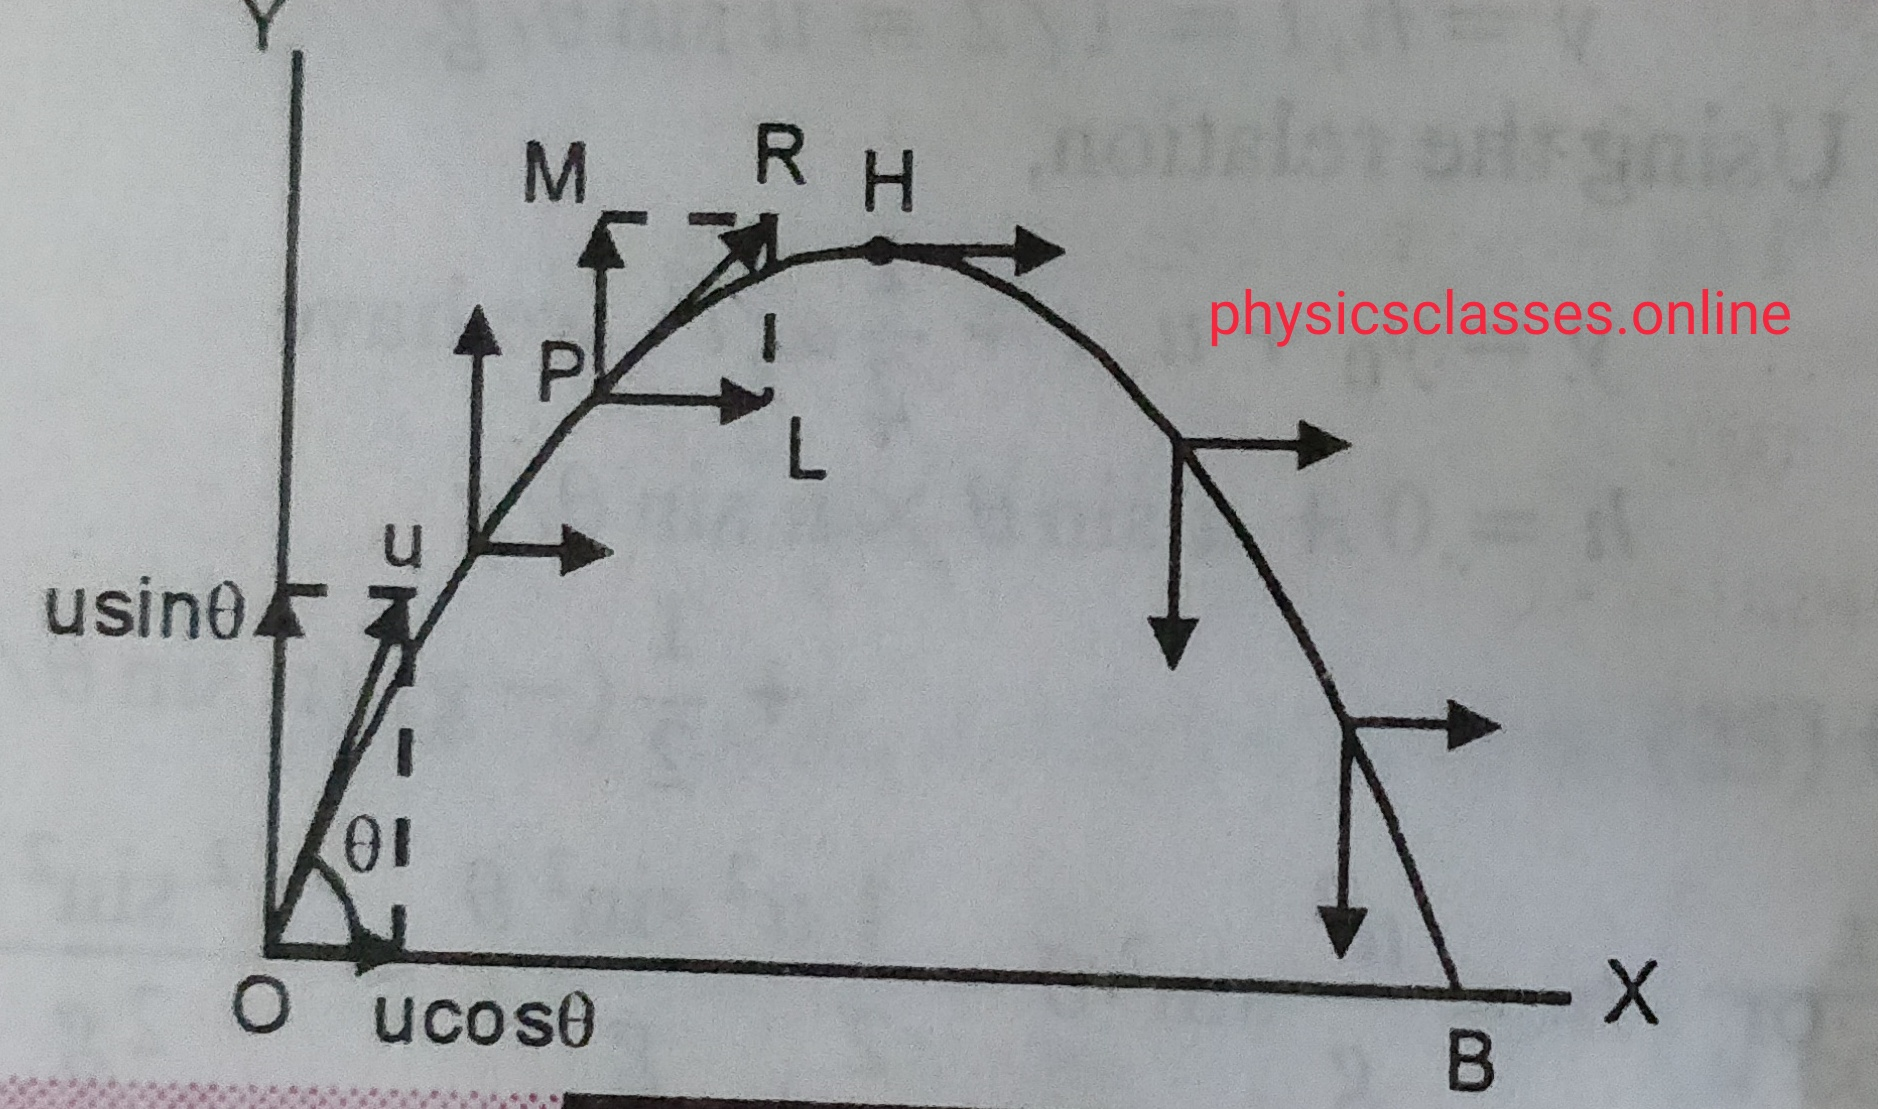 VELOCITY OF PROJECTILE AT ANY INSTANT